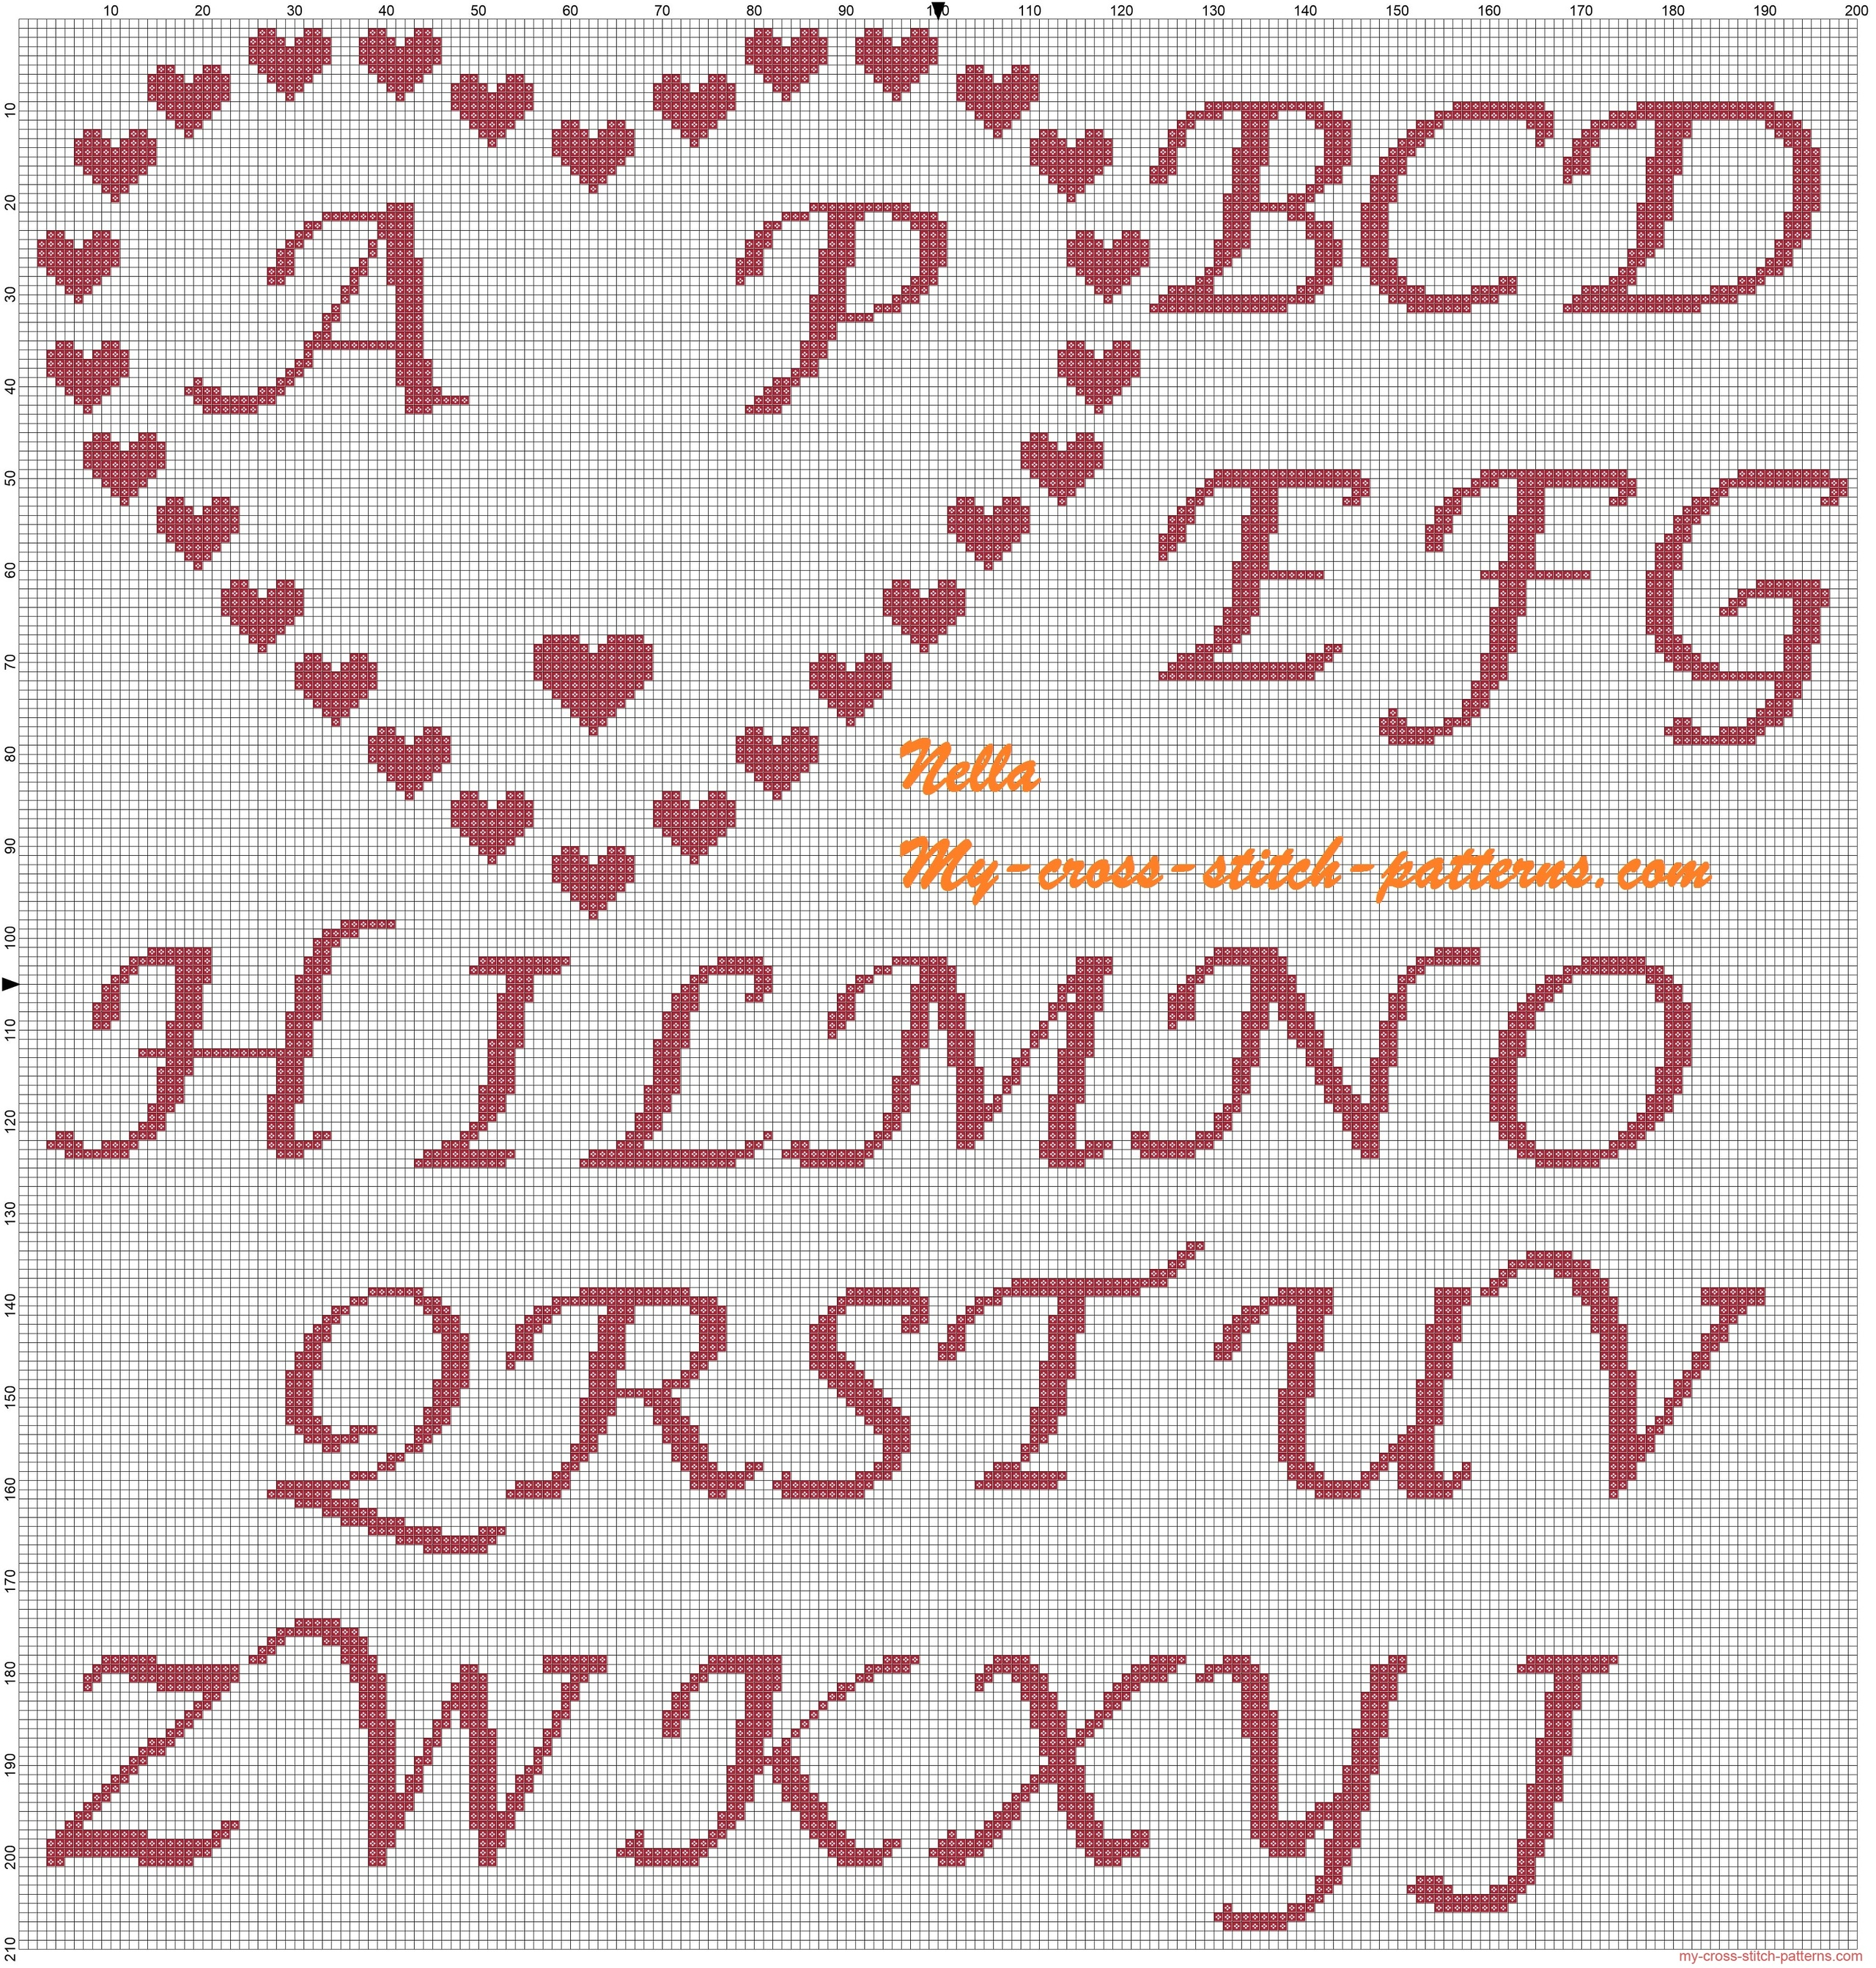 ring_pillows_hearts_and_initials_cross_stitch_pattern